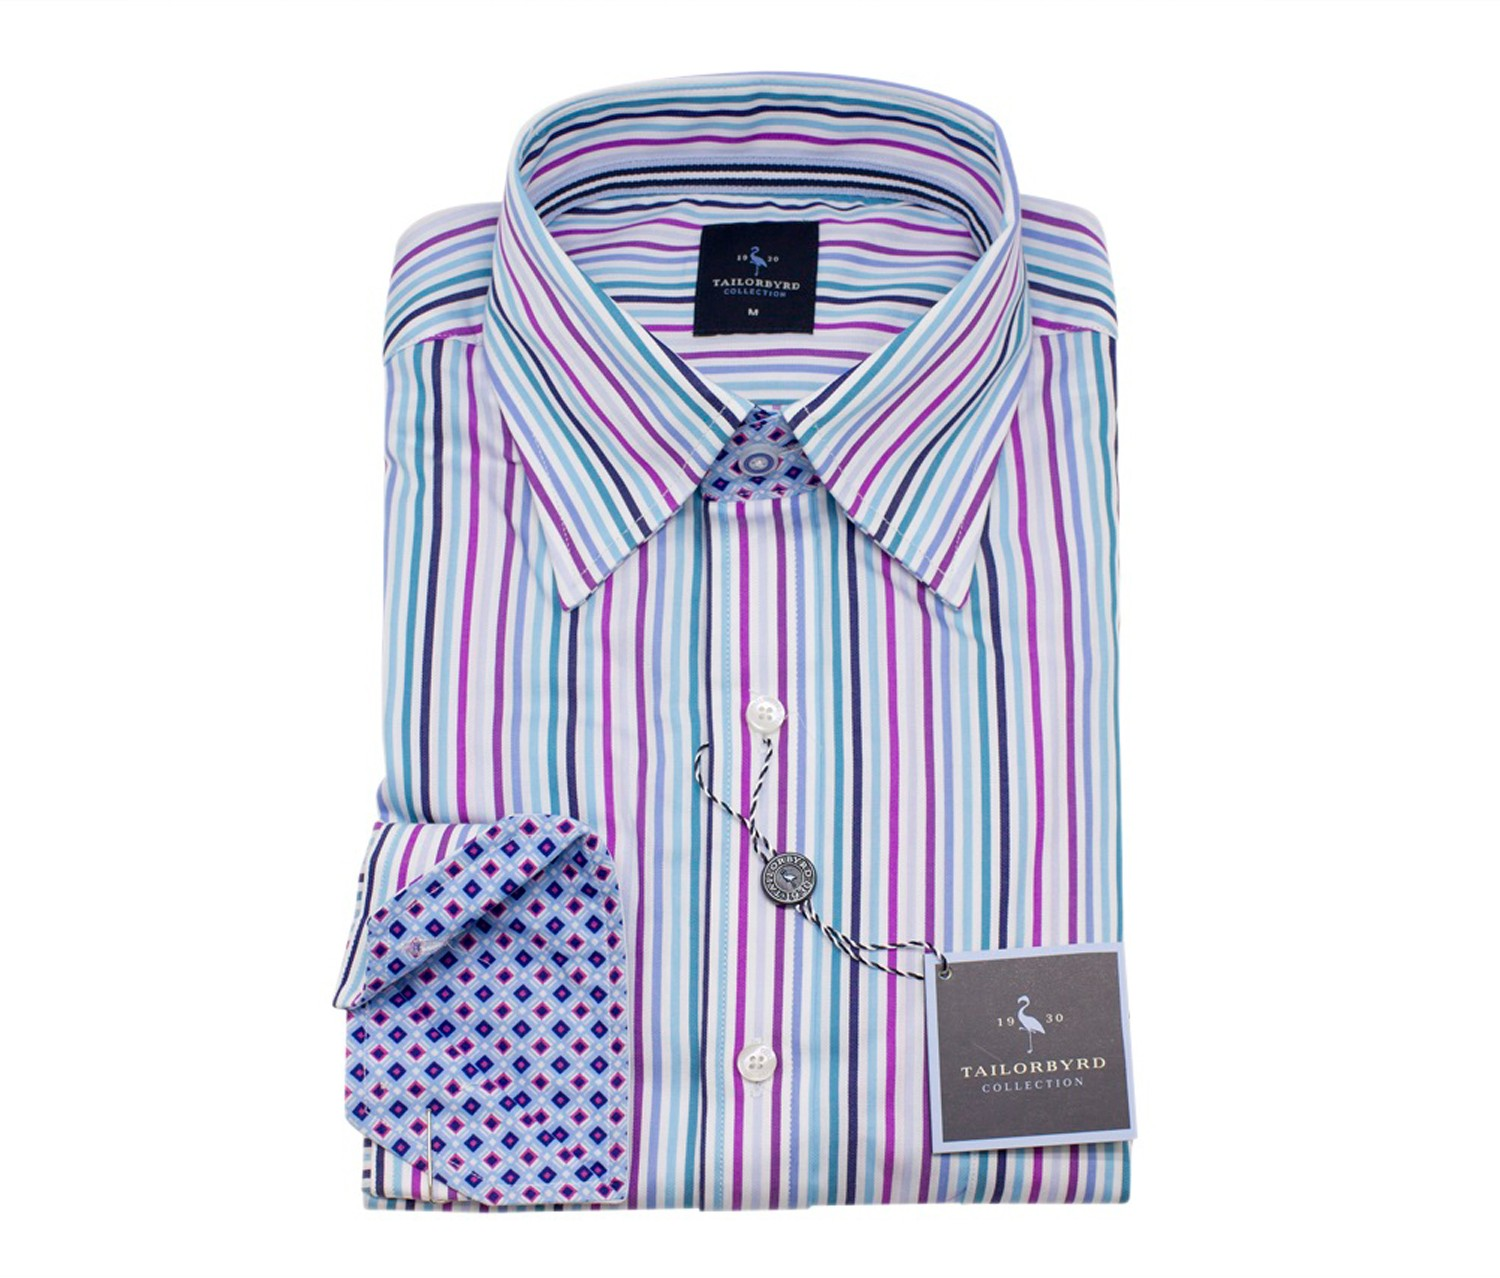 TailorByrd Multi Striped Long Sleeve Shirt, Turquoise